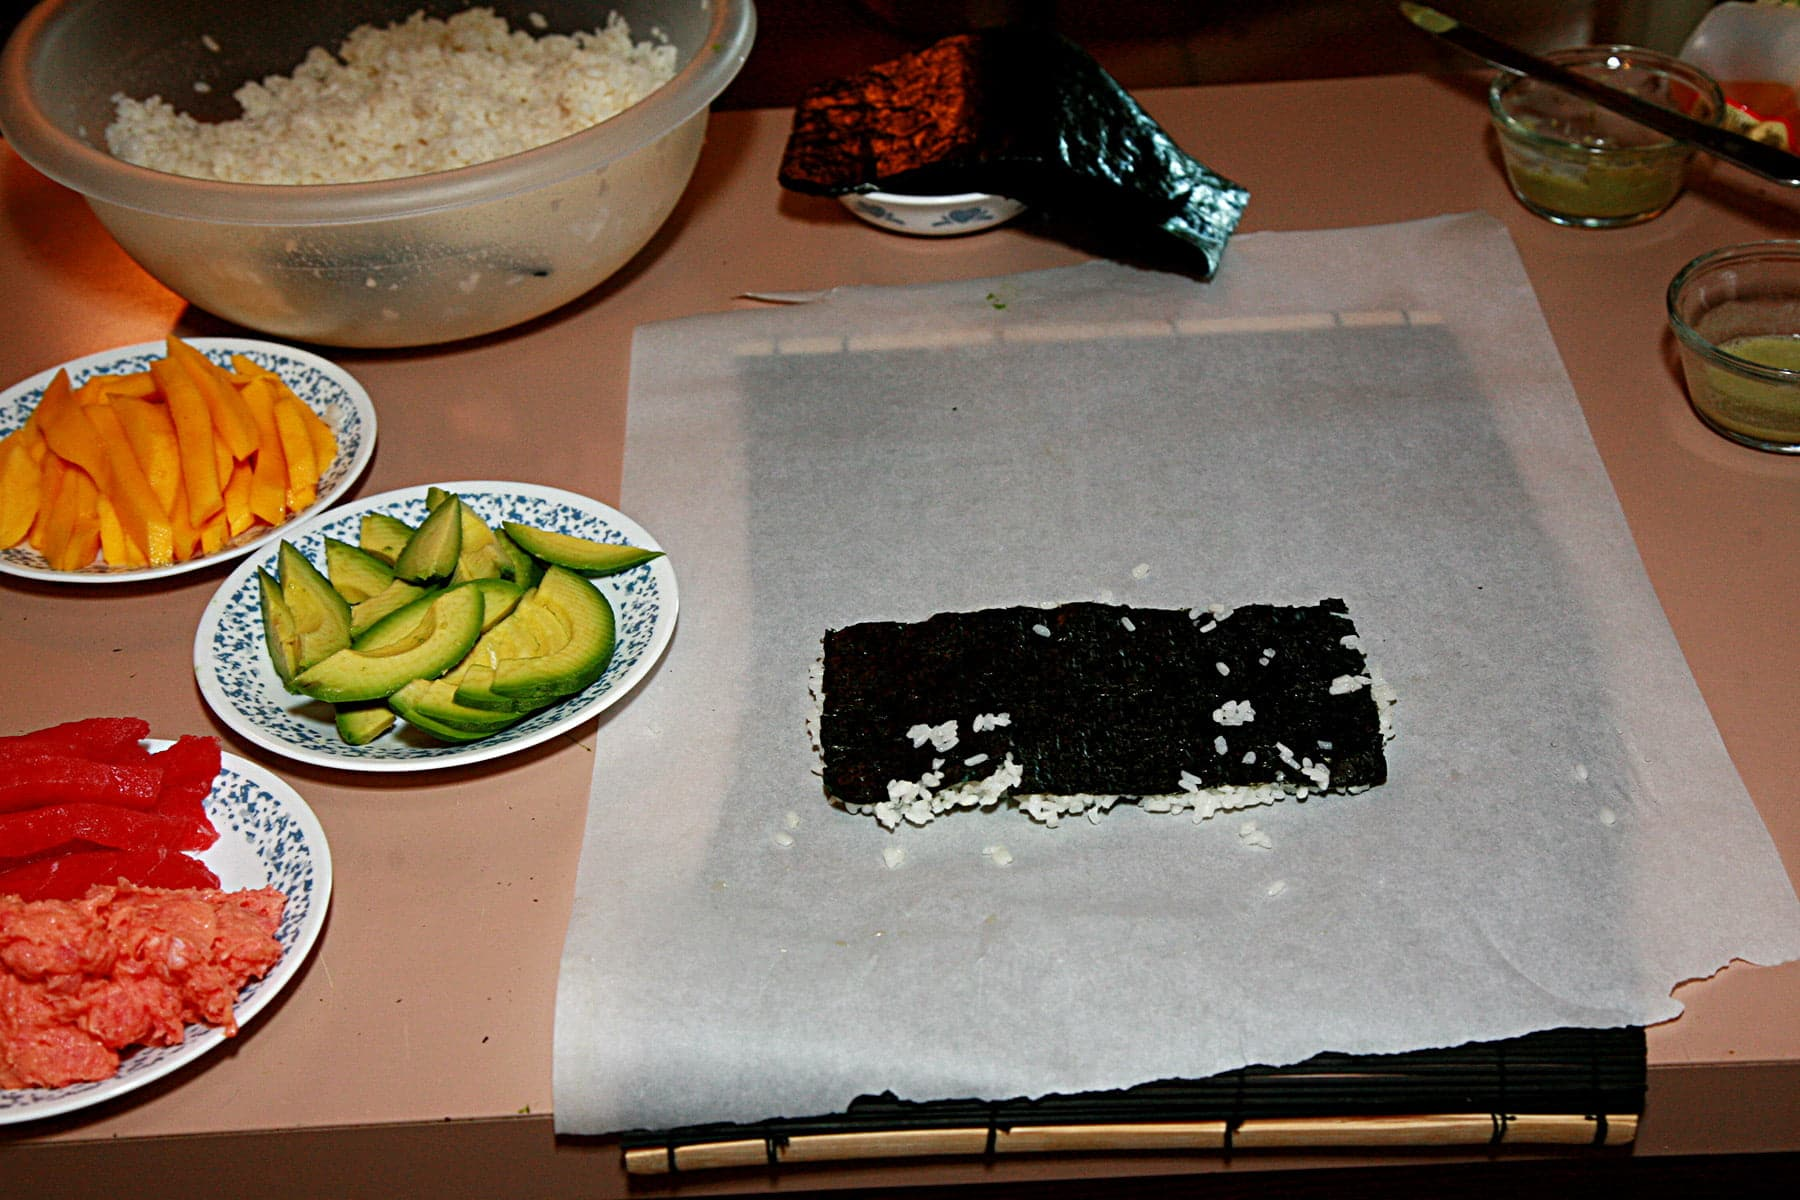 A sushi rolling station. A piece of nori with rice is laid out on a piece of parchment paper, with various sushi fillings laid out on plates next to it.